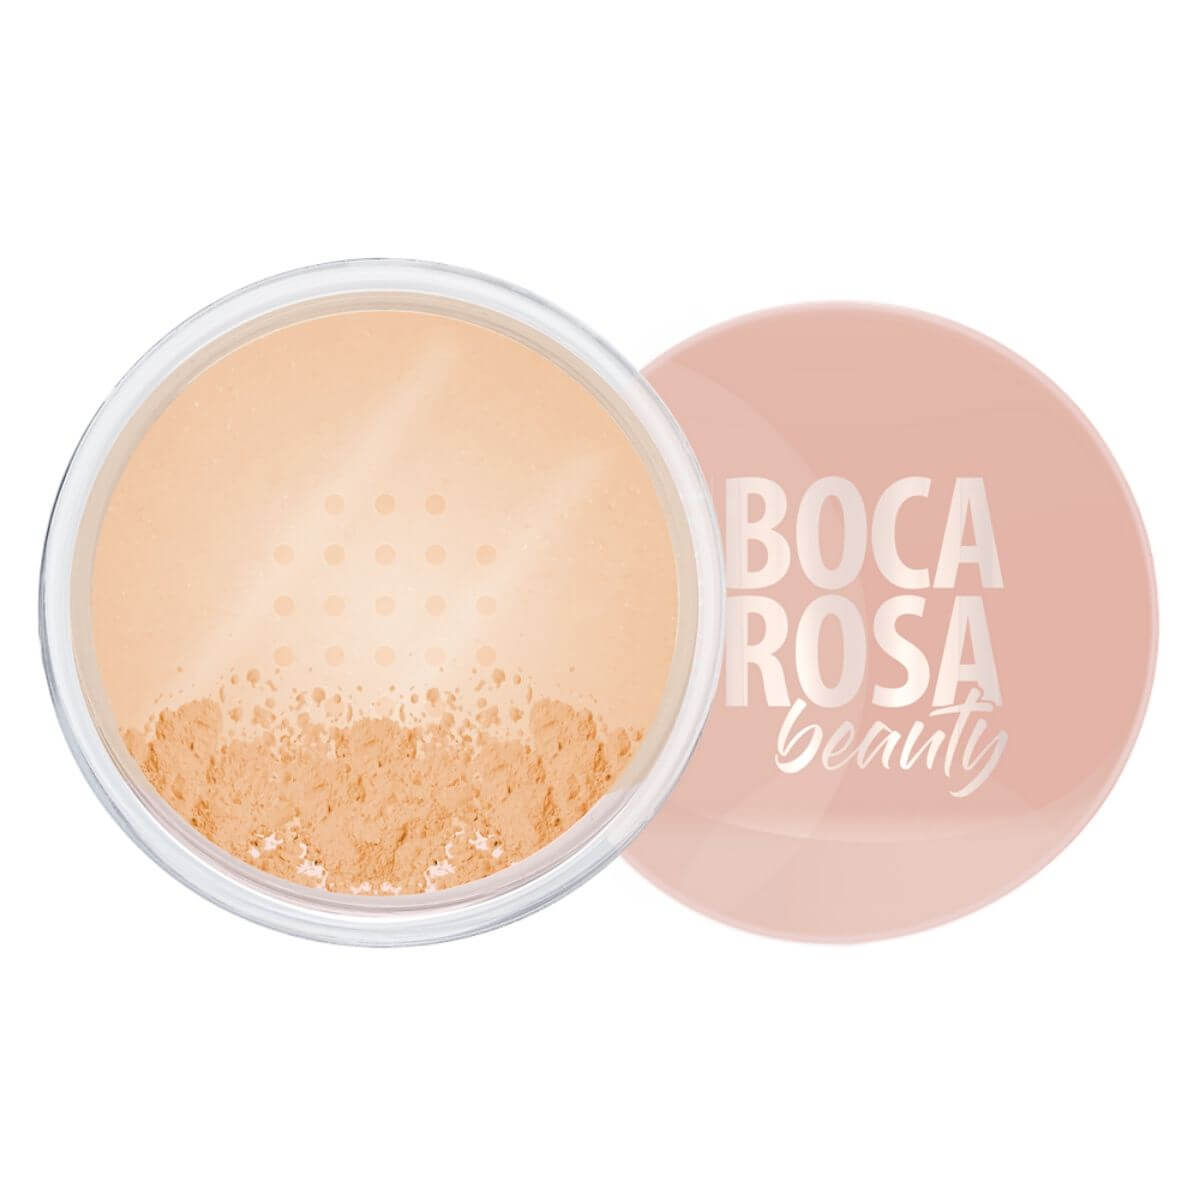 Pó Facial Solto Boca Rosa Beauty By Payot Mate - 2 - Mármore 20g